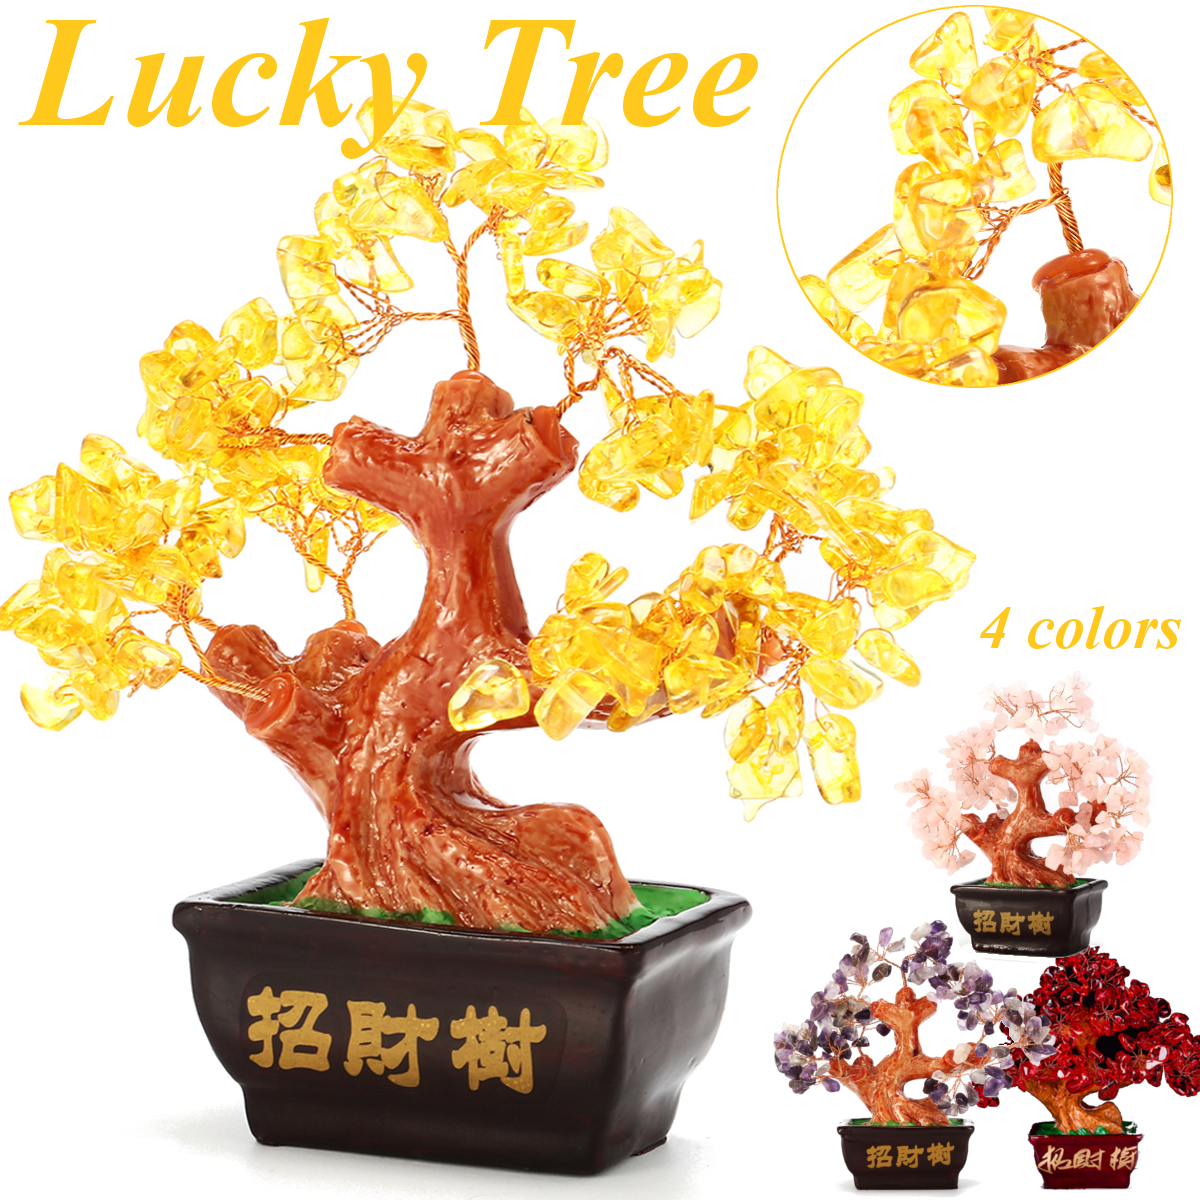 Feng Shui Crystal Money Tree Ornaments Lucky tree Bonsai Style Wealth Luck Feng Shui Bring Wealth Home Money Tree ornamentsFeng Shui Crystal Money Tree Ornaments Lucky tree Bonsai Style Wealth Luck Feng Shui Bring Wealth Home Money Tree ornaments